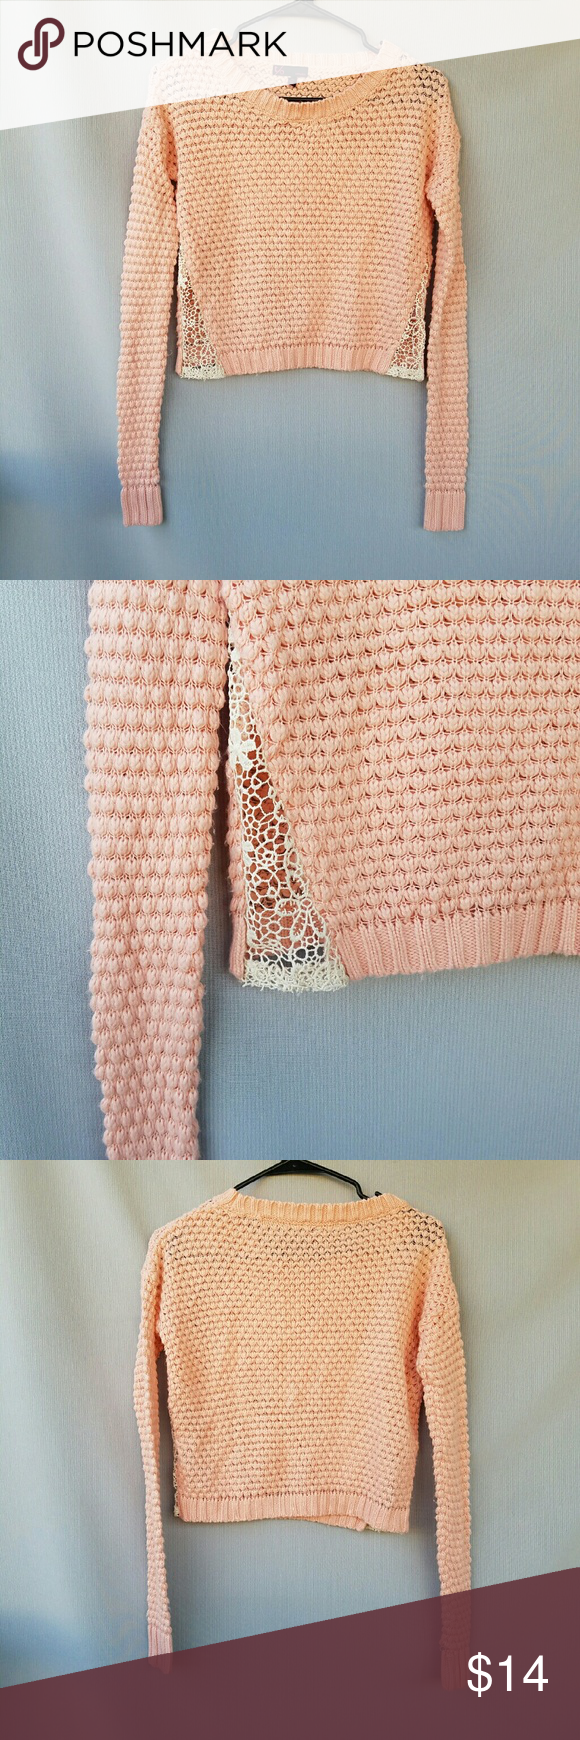 T/o Sweaters Blush Cropped Sweater Cute crochet panels on sides Excellent condition  Feel free to ask me any additional questions! Bundles 3+ 15% off. Happy Poshing! No trades, or modeling. t/o sweaters Sweaters